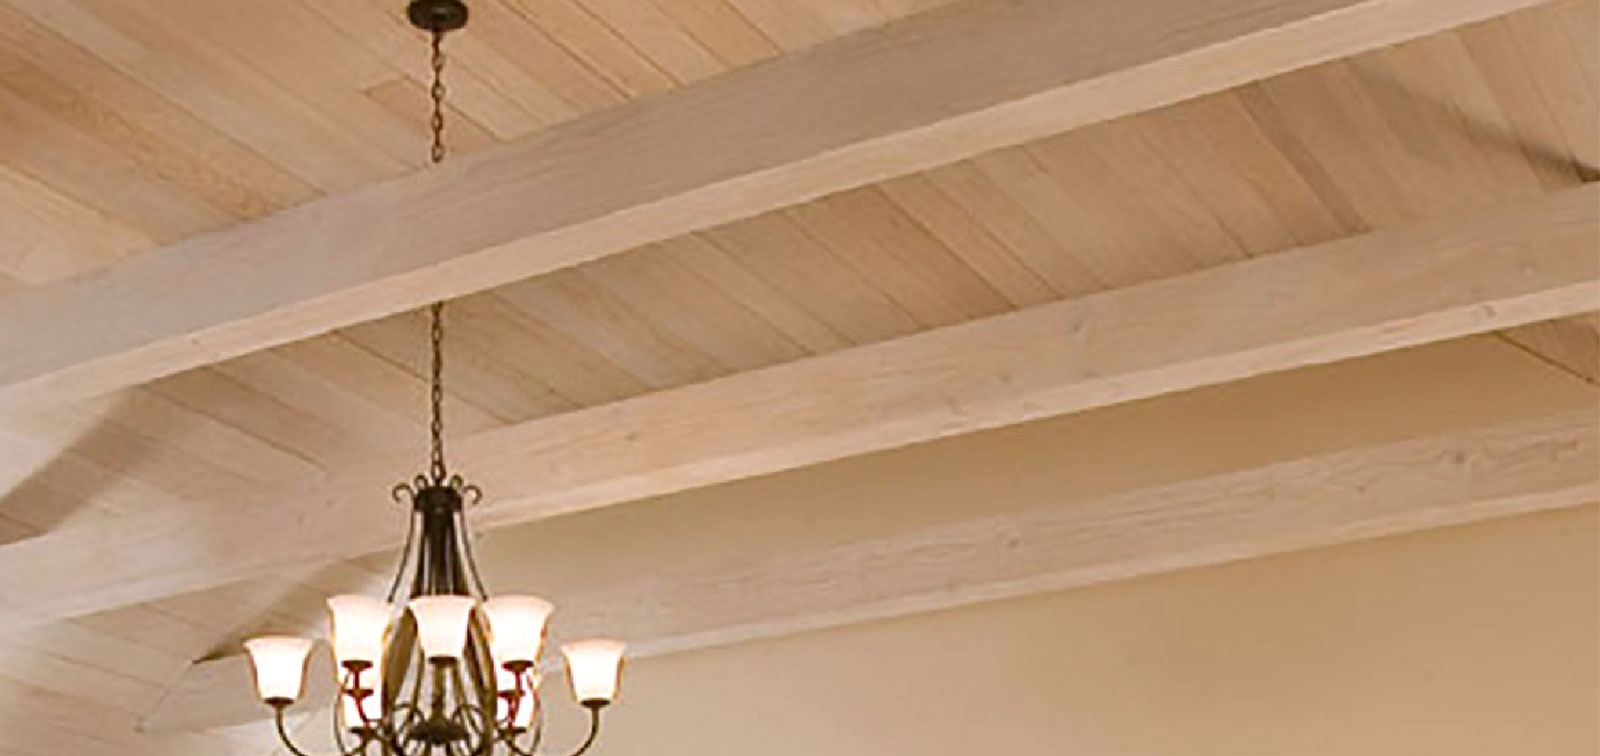 photo of chandelier hanging from ceiling of exposed beams and boards with light pickling color